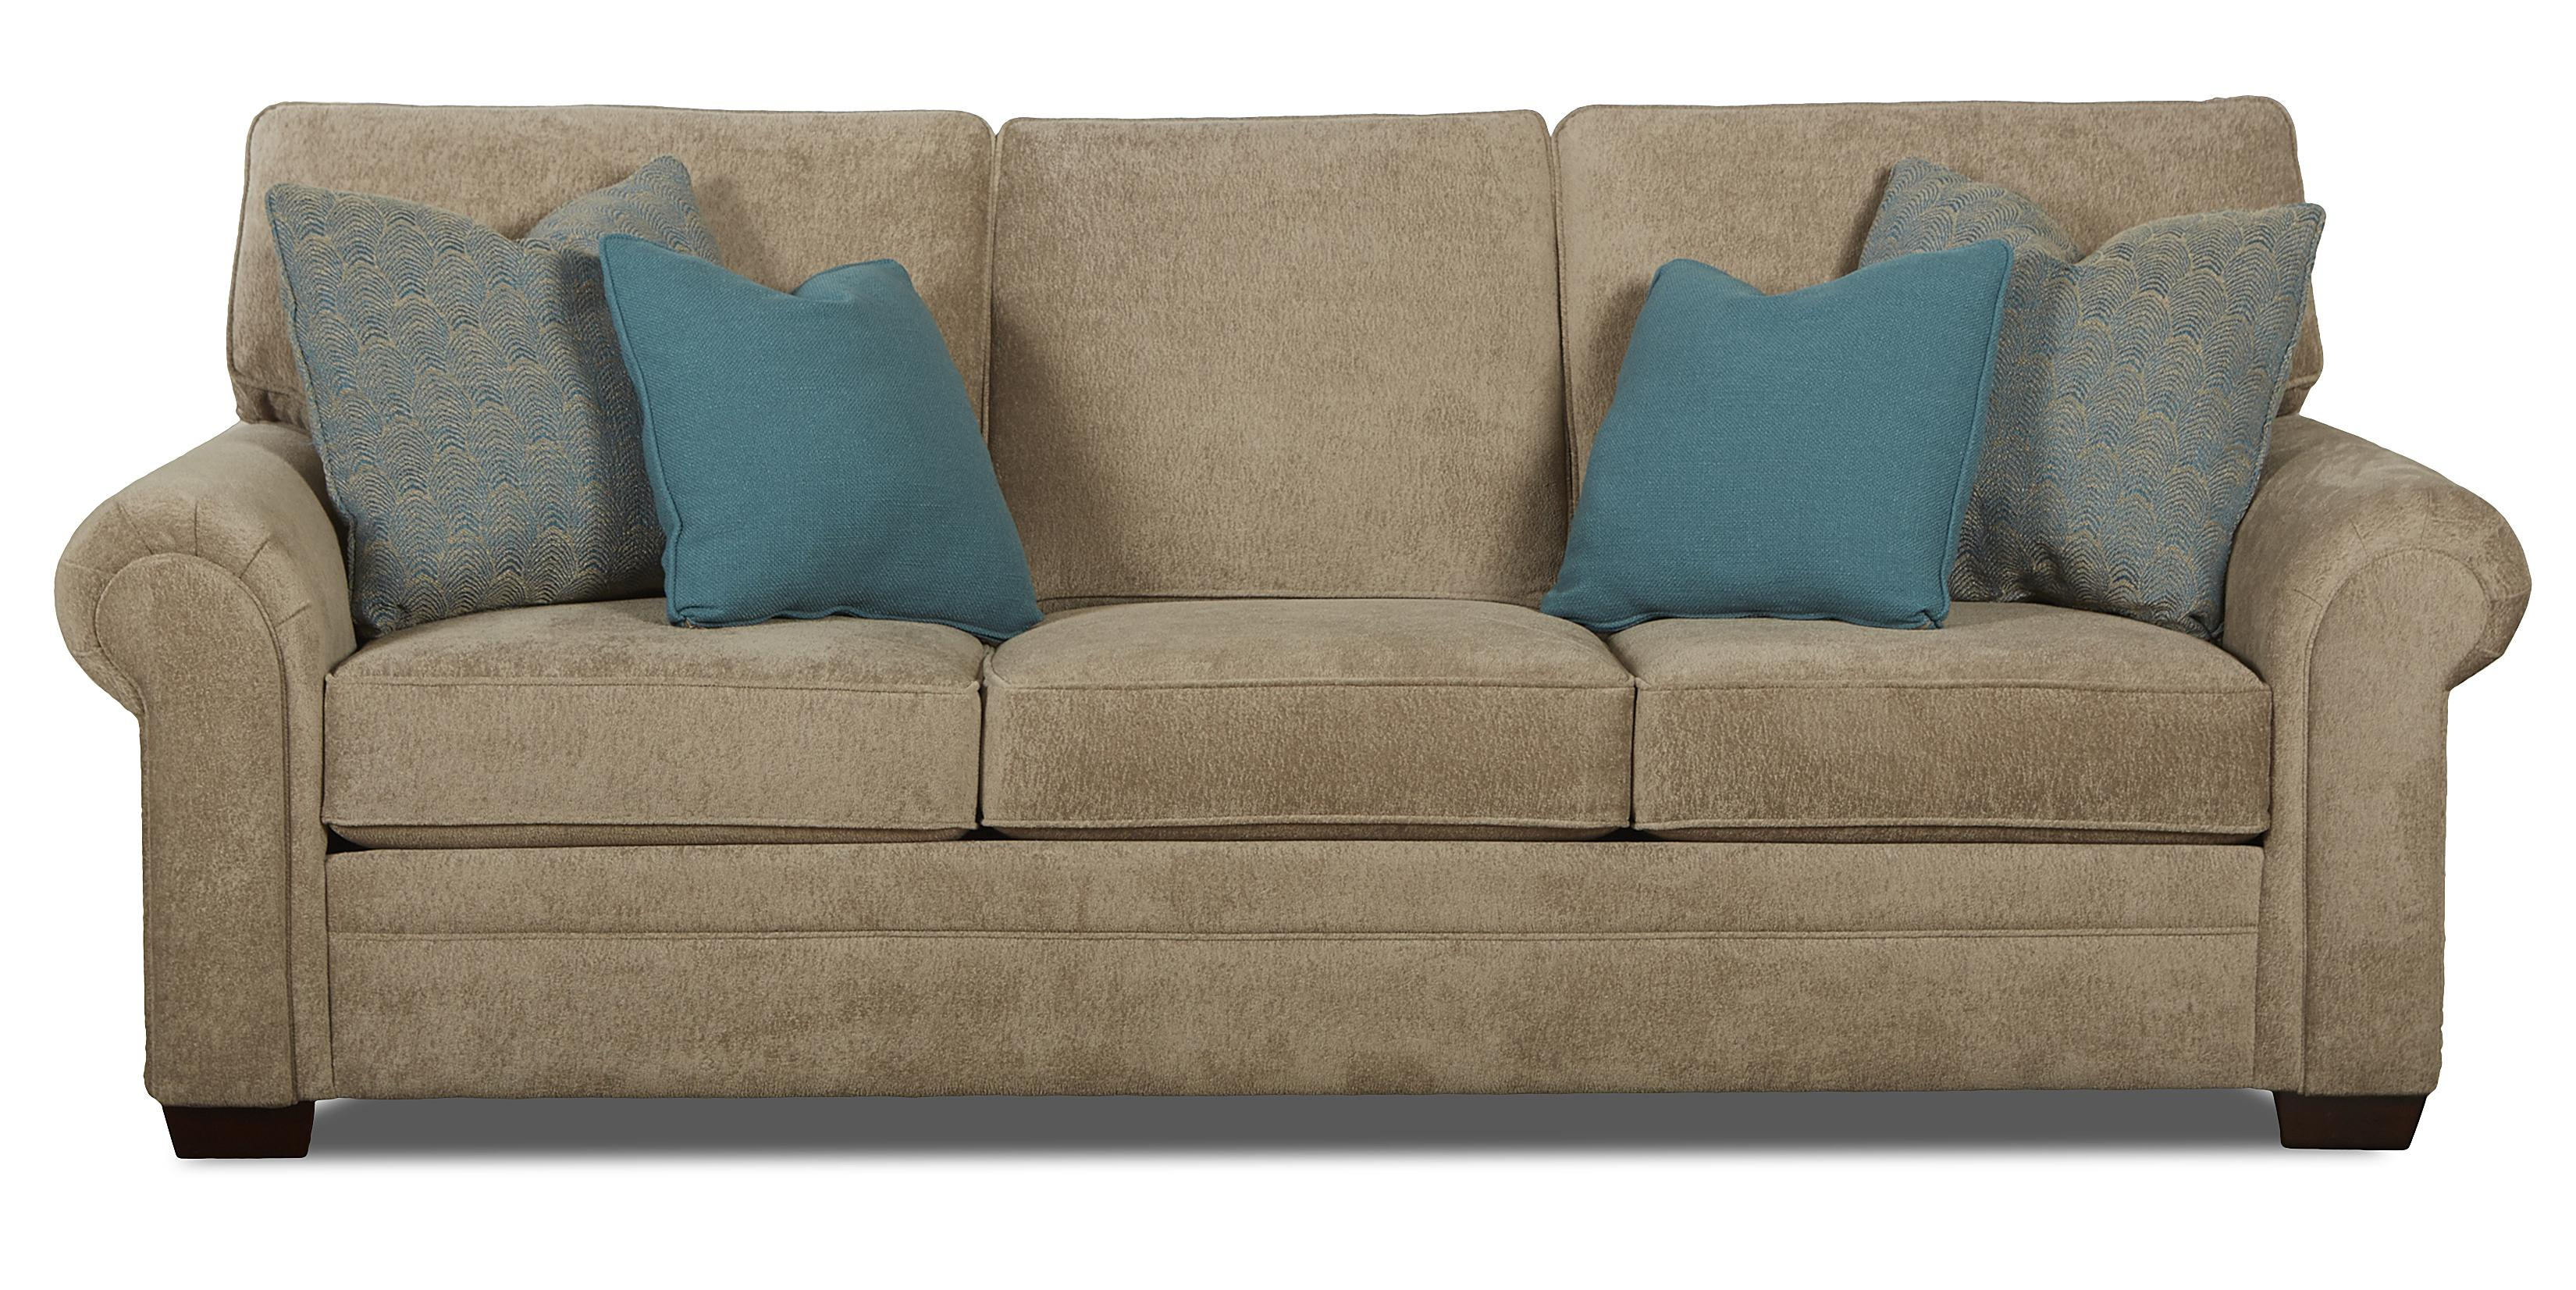 Traditional Enso Memory Foam Sleeper Sofa With Rolled Arms